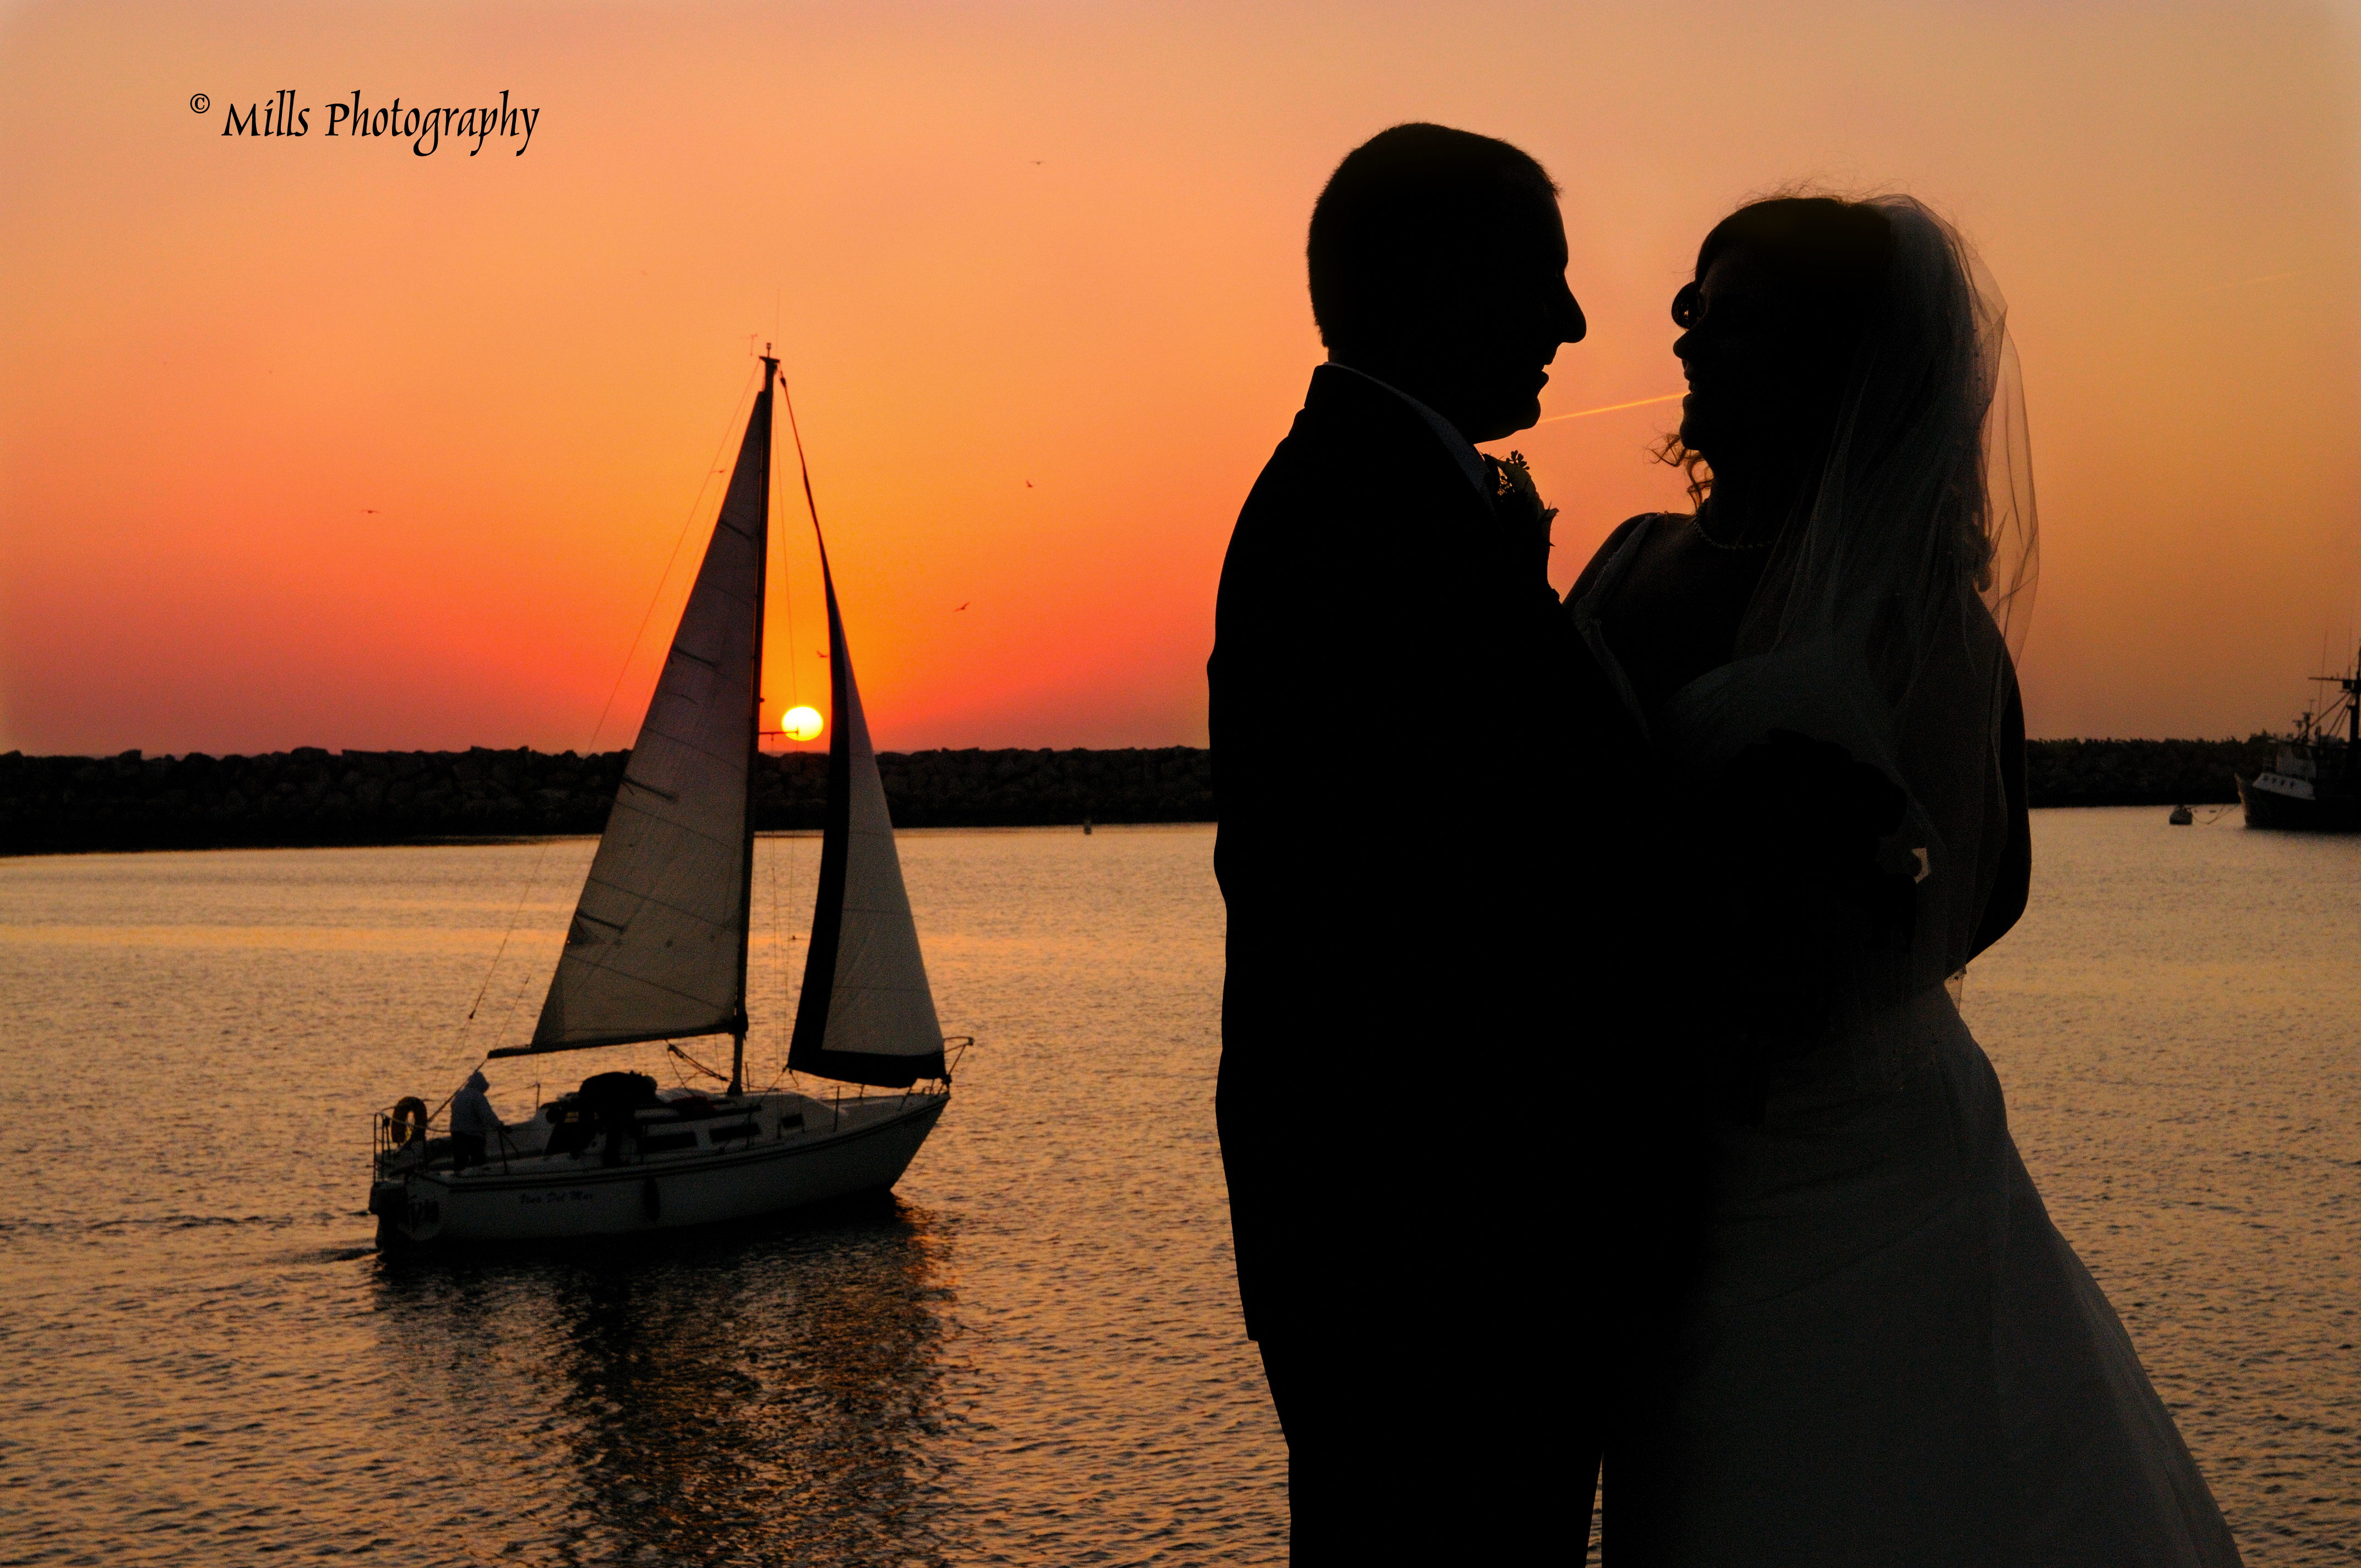 orange, red, Bride, Groom, Wedding, Ocean, Sunset, Beautiful, Silhouette, Sailboat